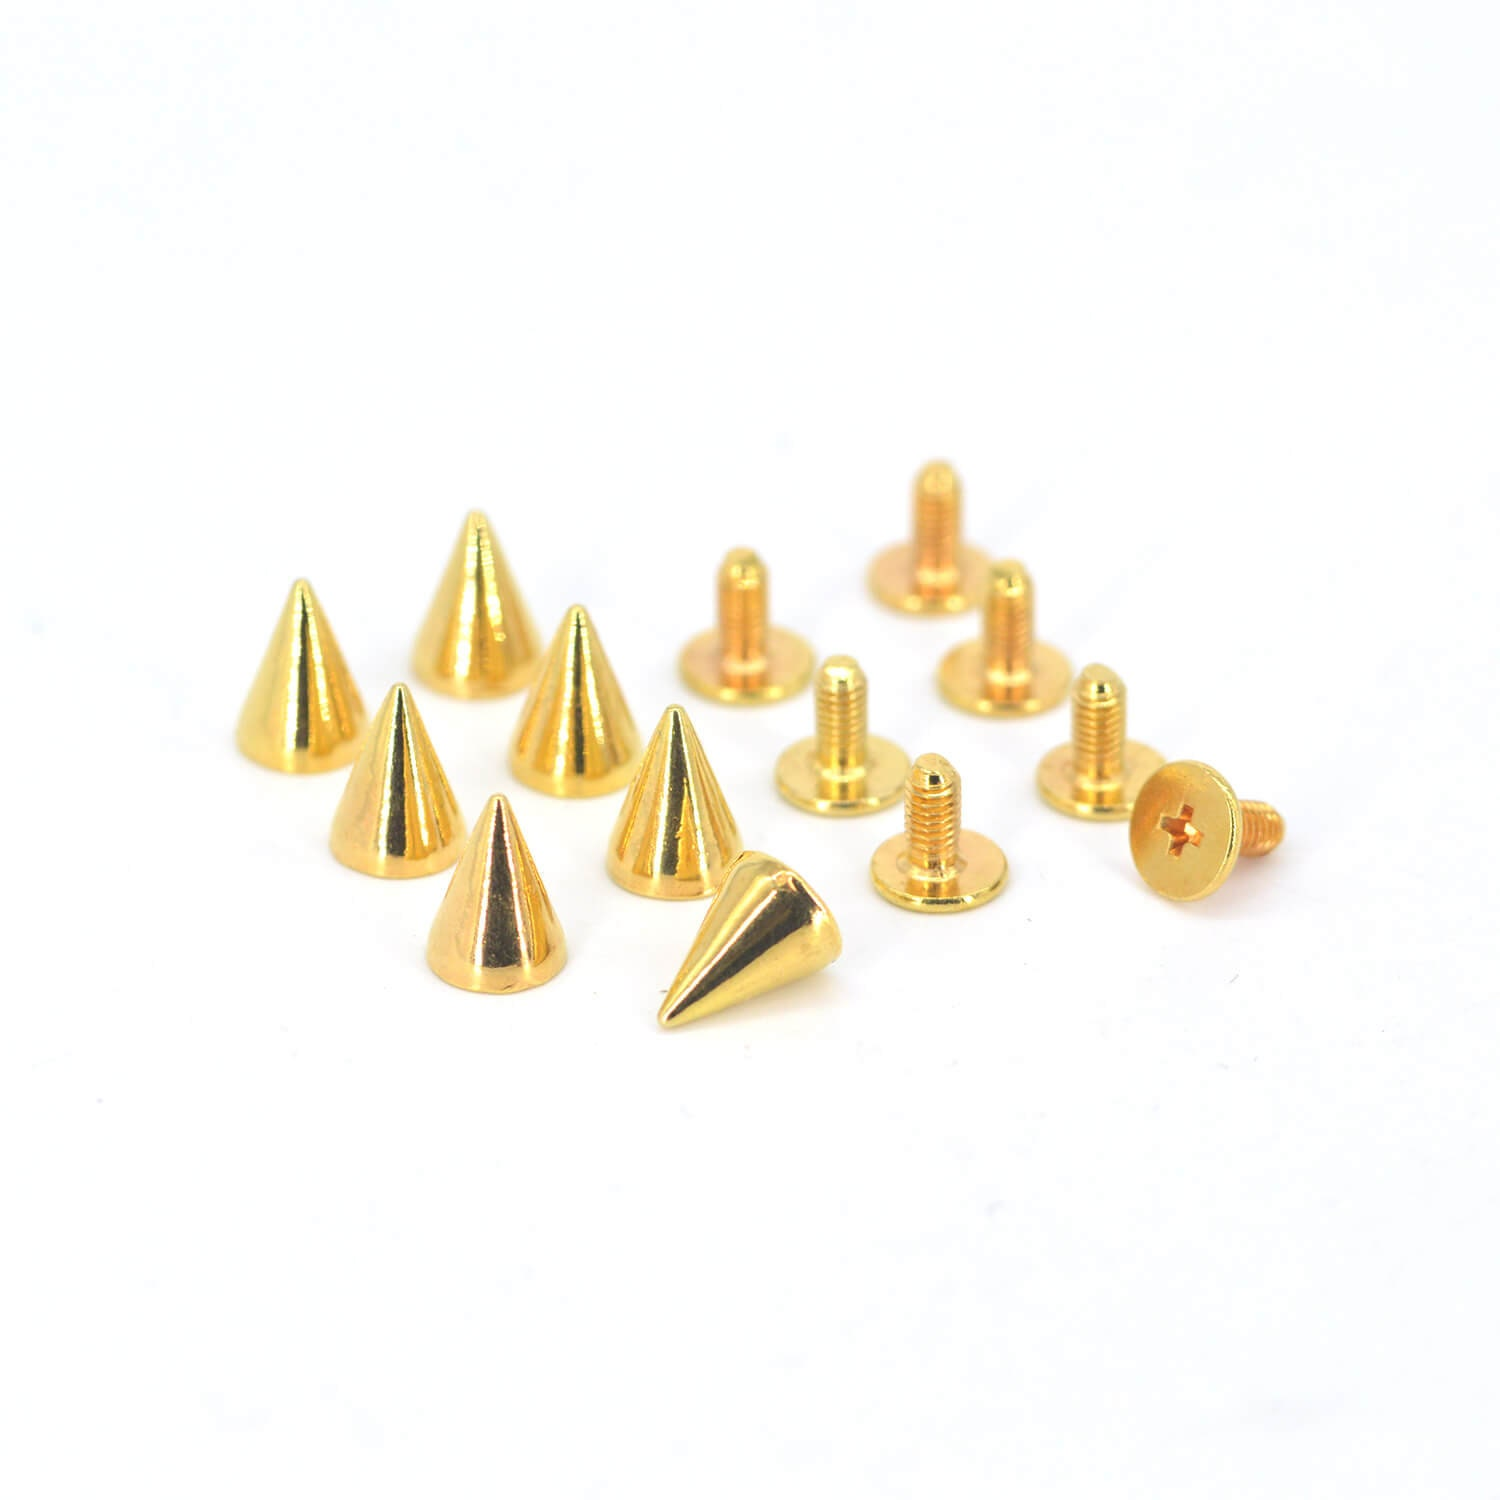 200PCS GOLD Cone Rivets Screw Punk Studs Leather Crafts